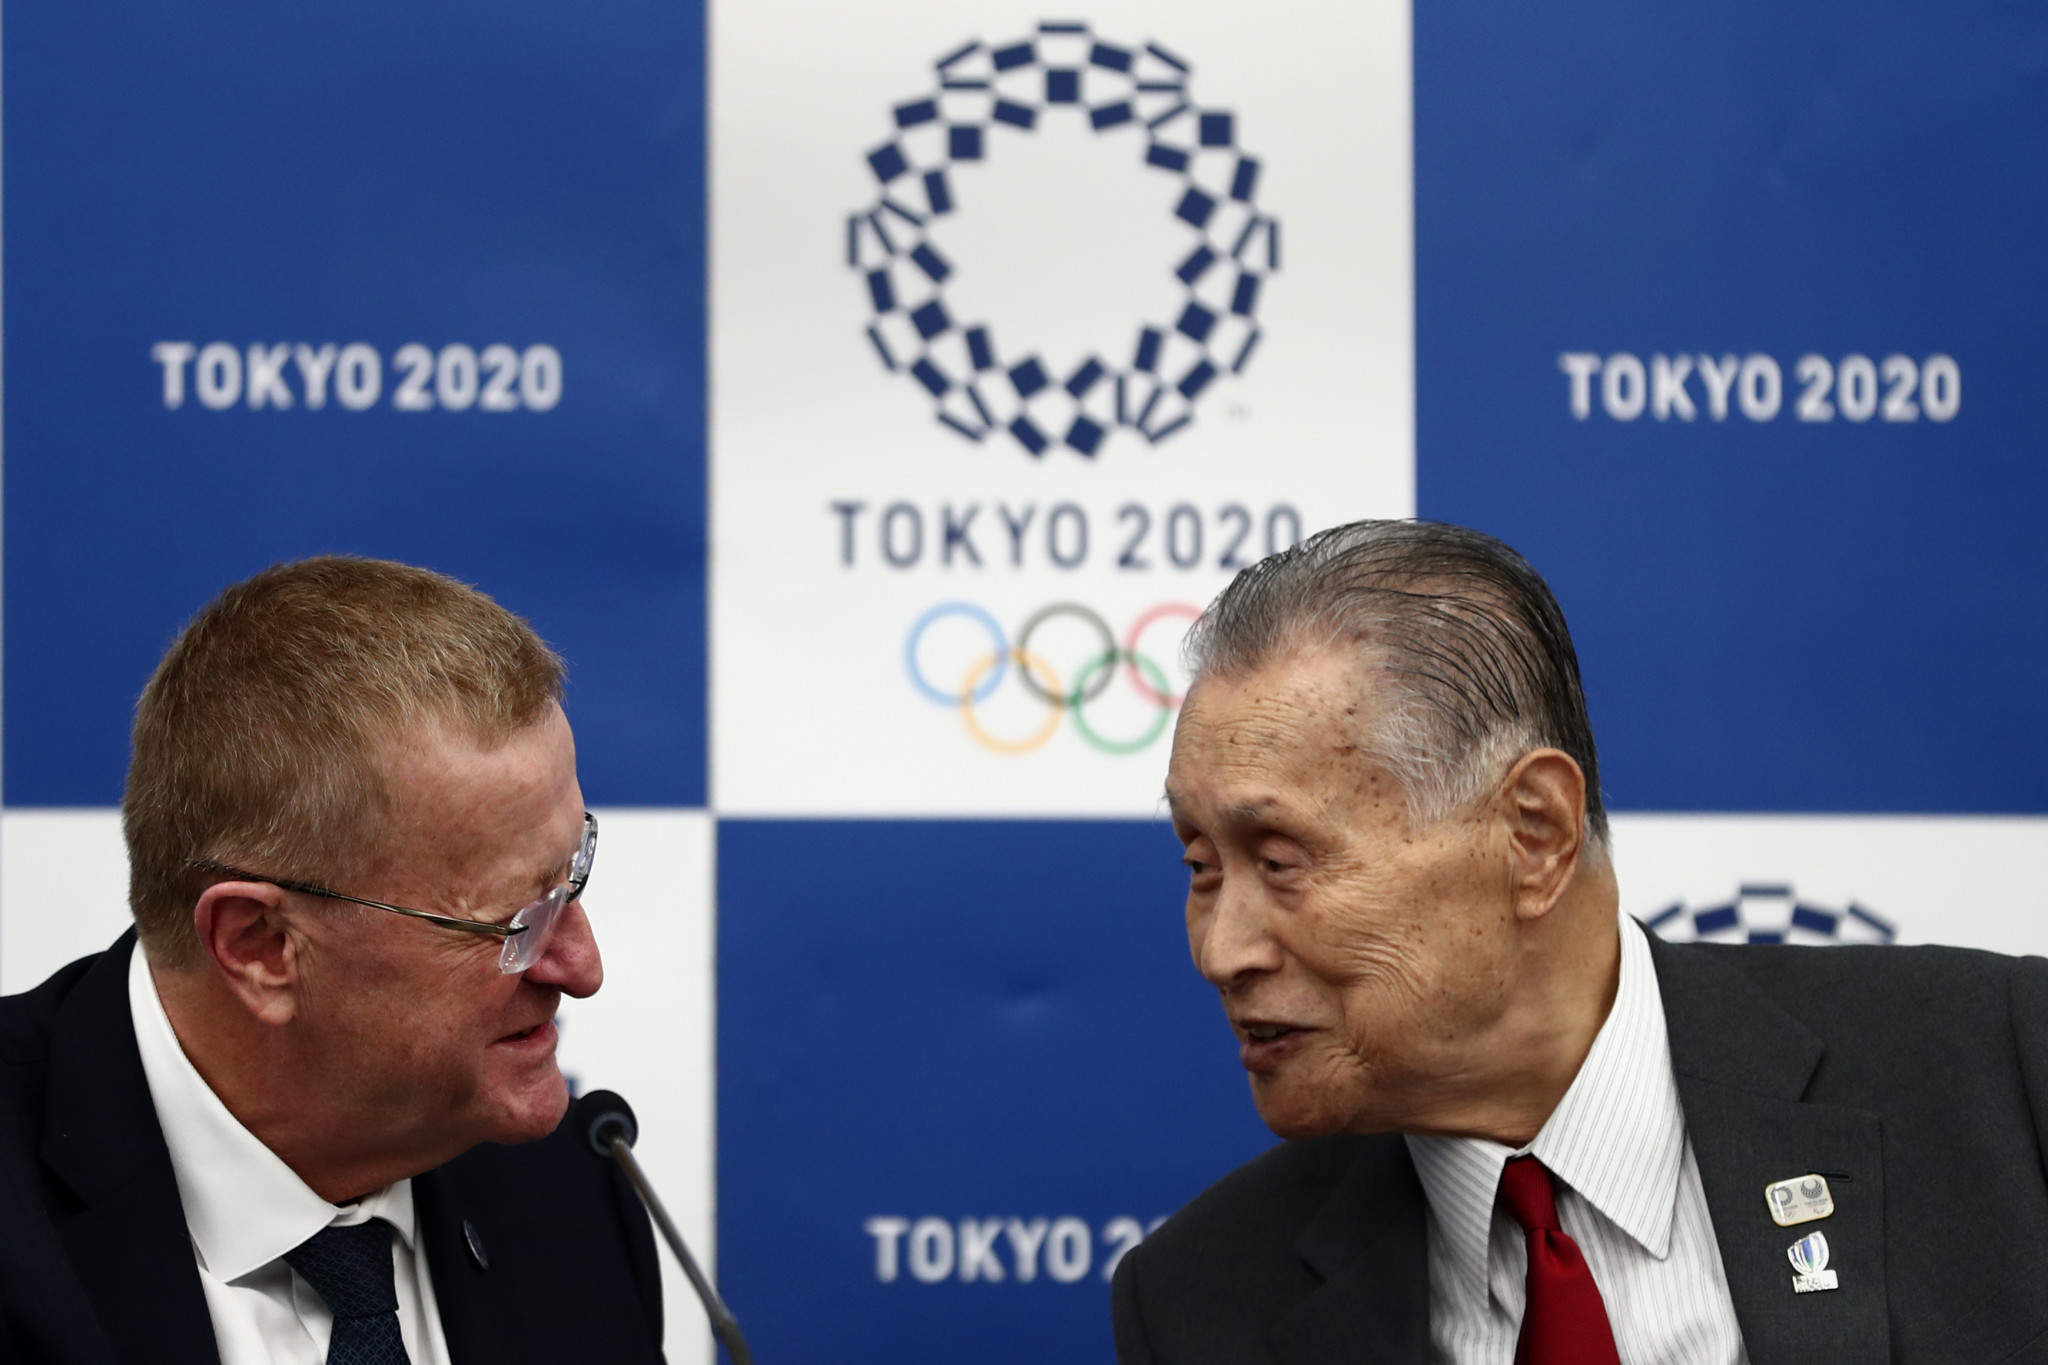 John Coates has called on Tokyo 2020 to ensure there is an immediate legacy after next year's Olympics by hosting major events after the conclusion of the Games ©Getty Images